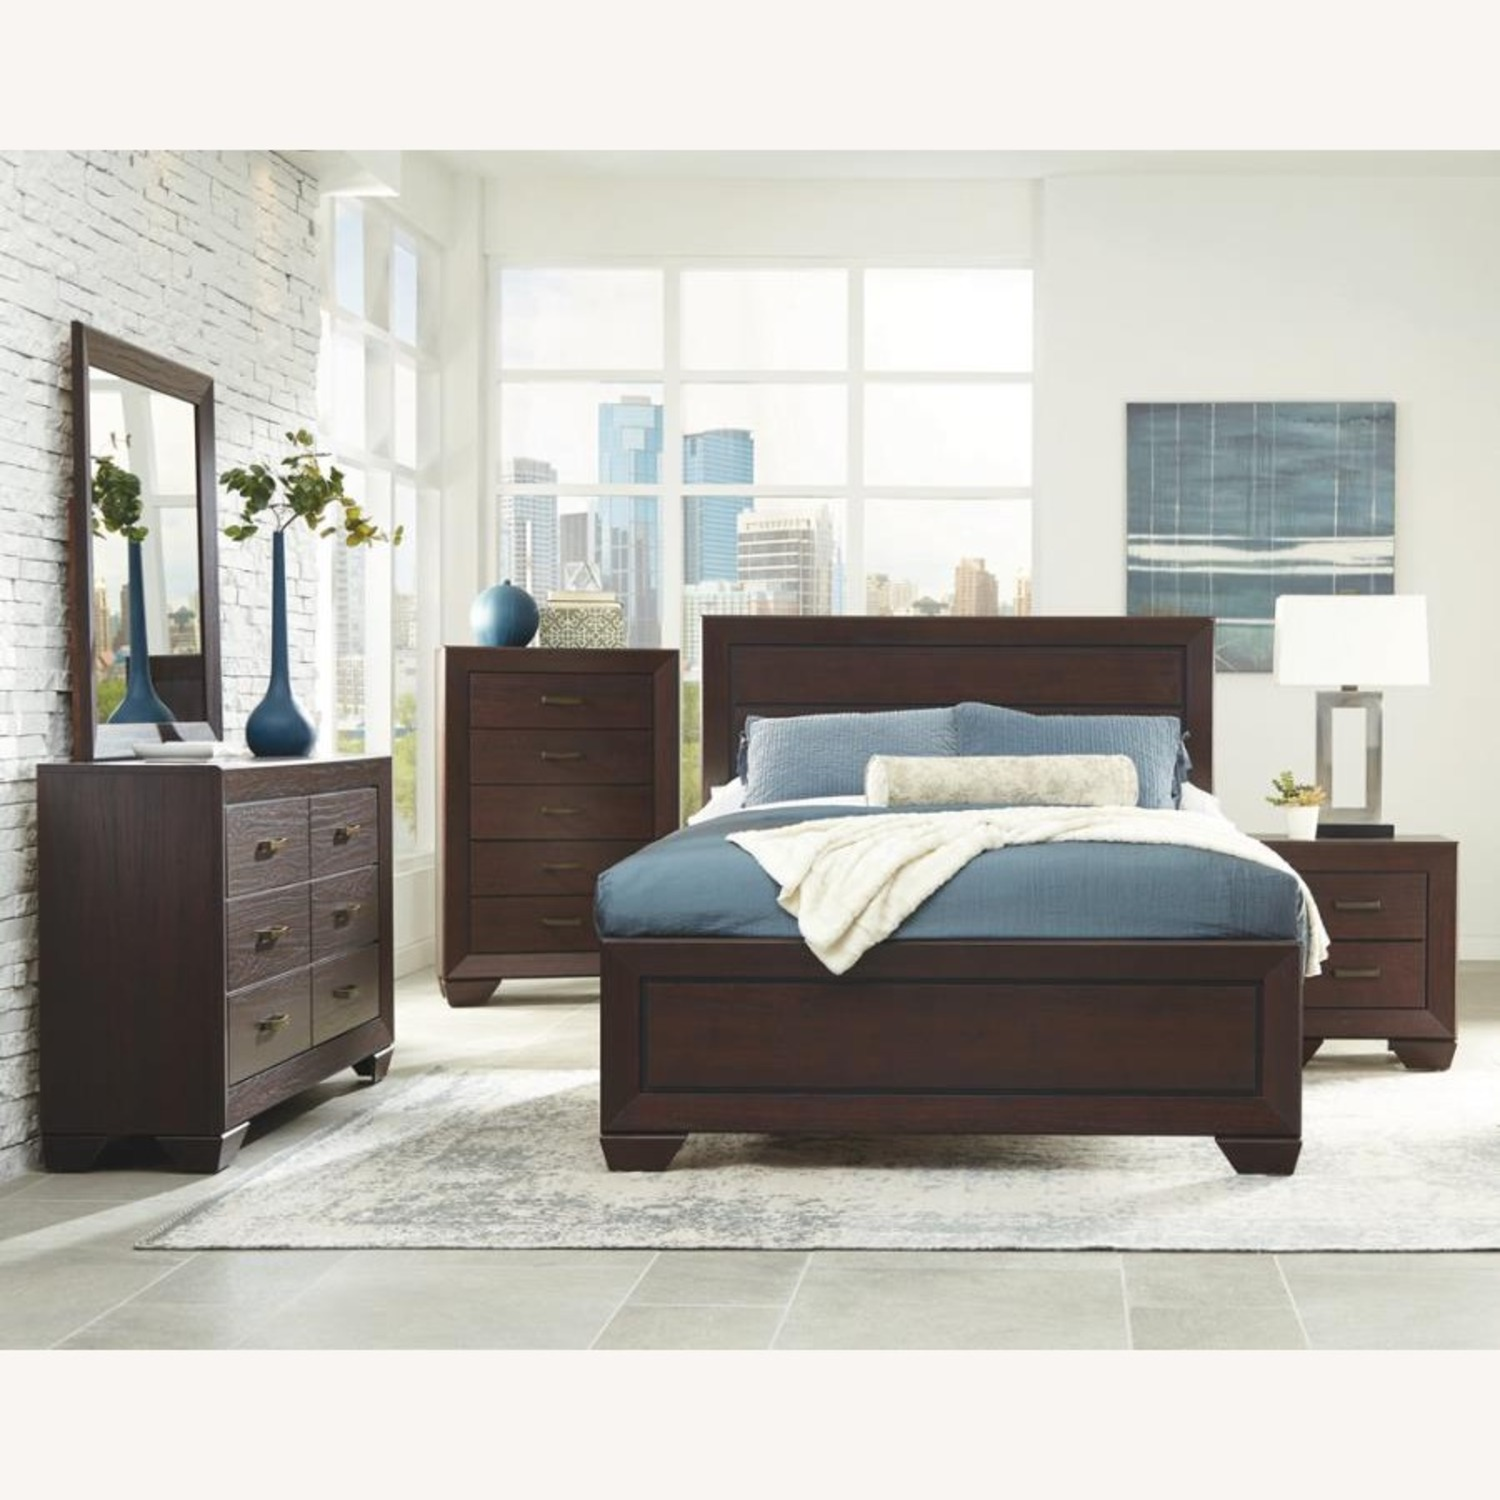 King Bed In Dark Cocoa Wood Finish - image-3